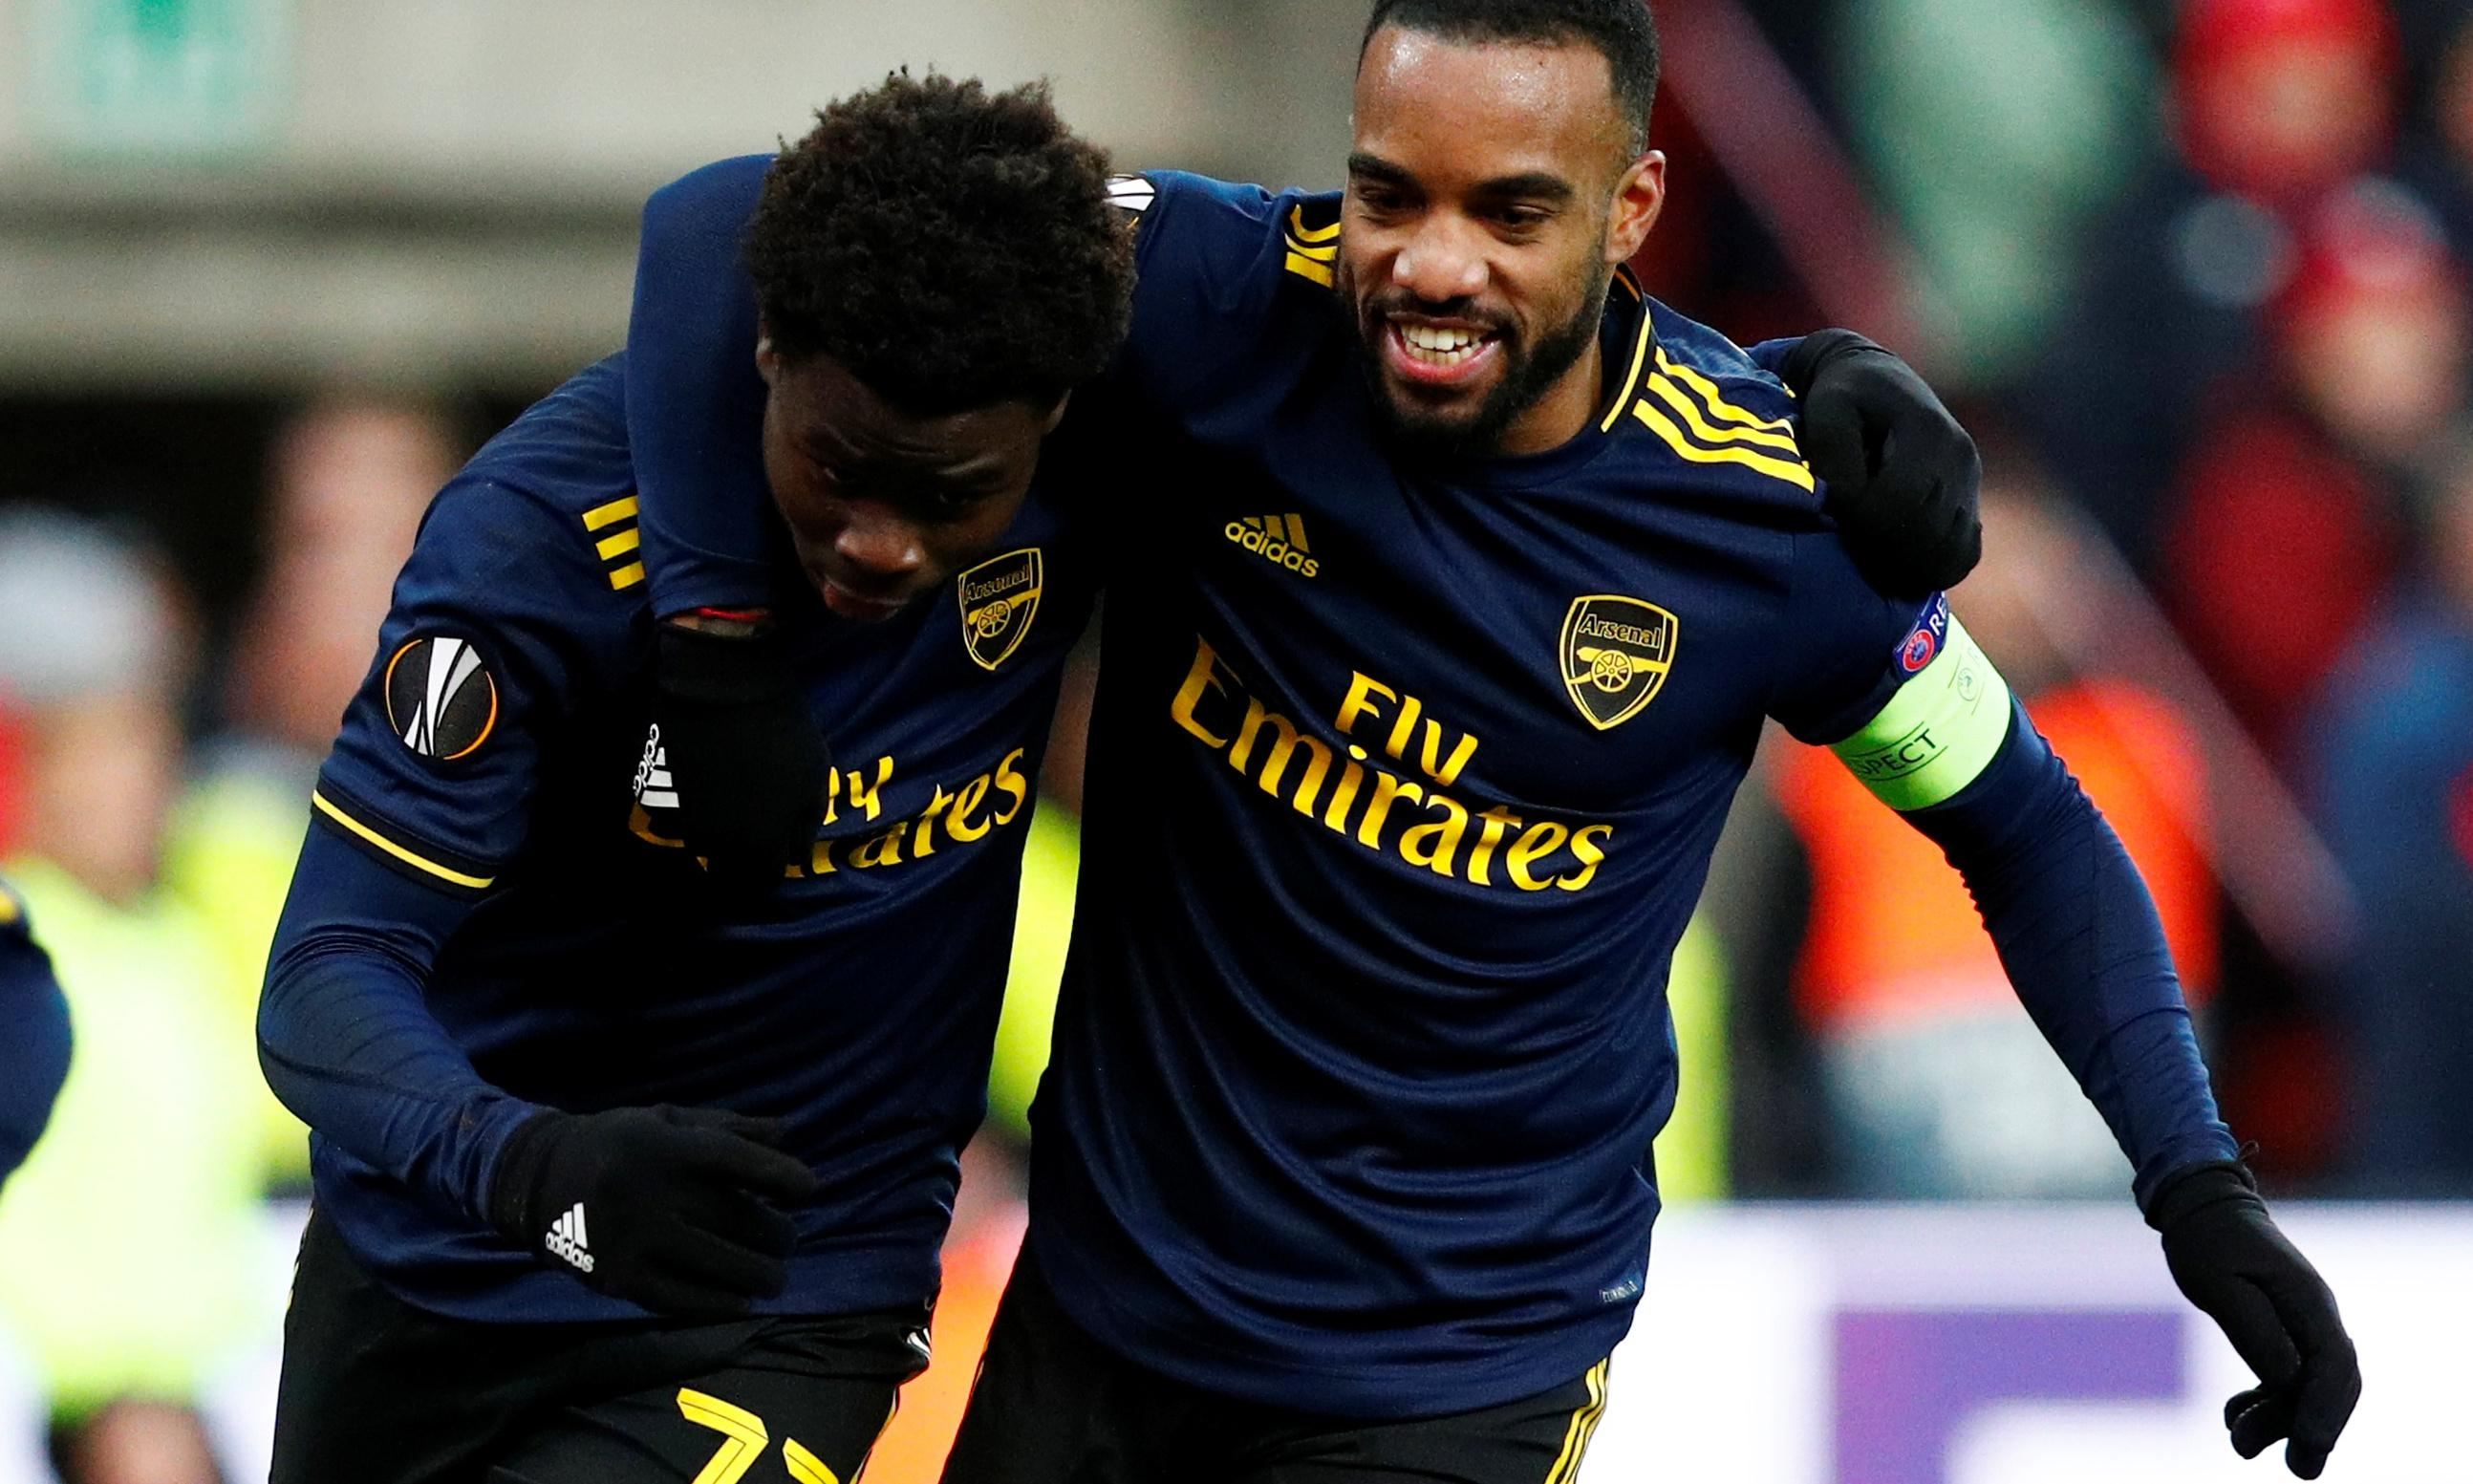 Arsenal flirt with disaster against Standard Liège but hit back to top group